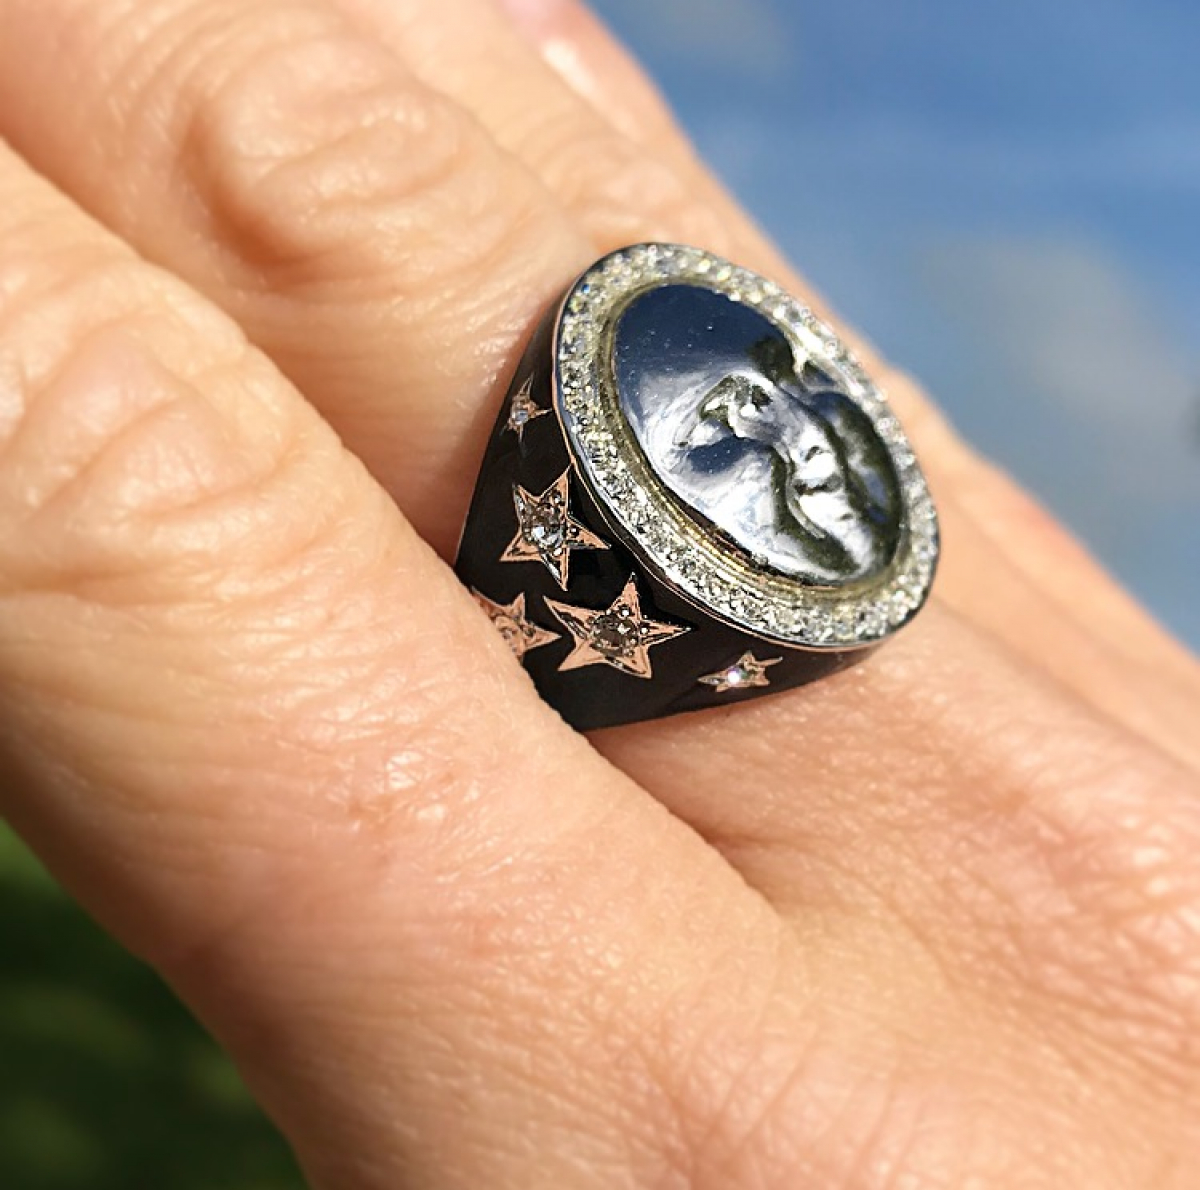 Archive Moon & Star Statement Ring - Medium size only